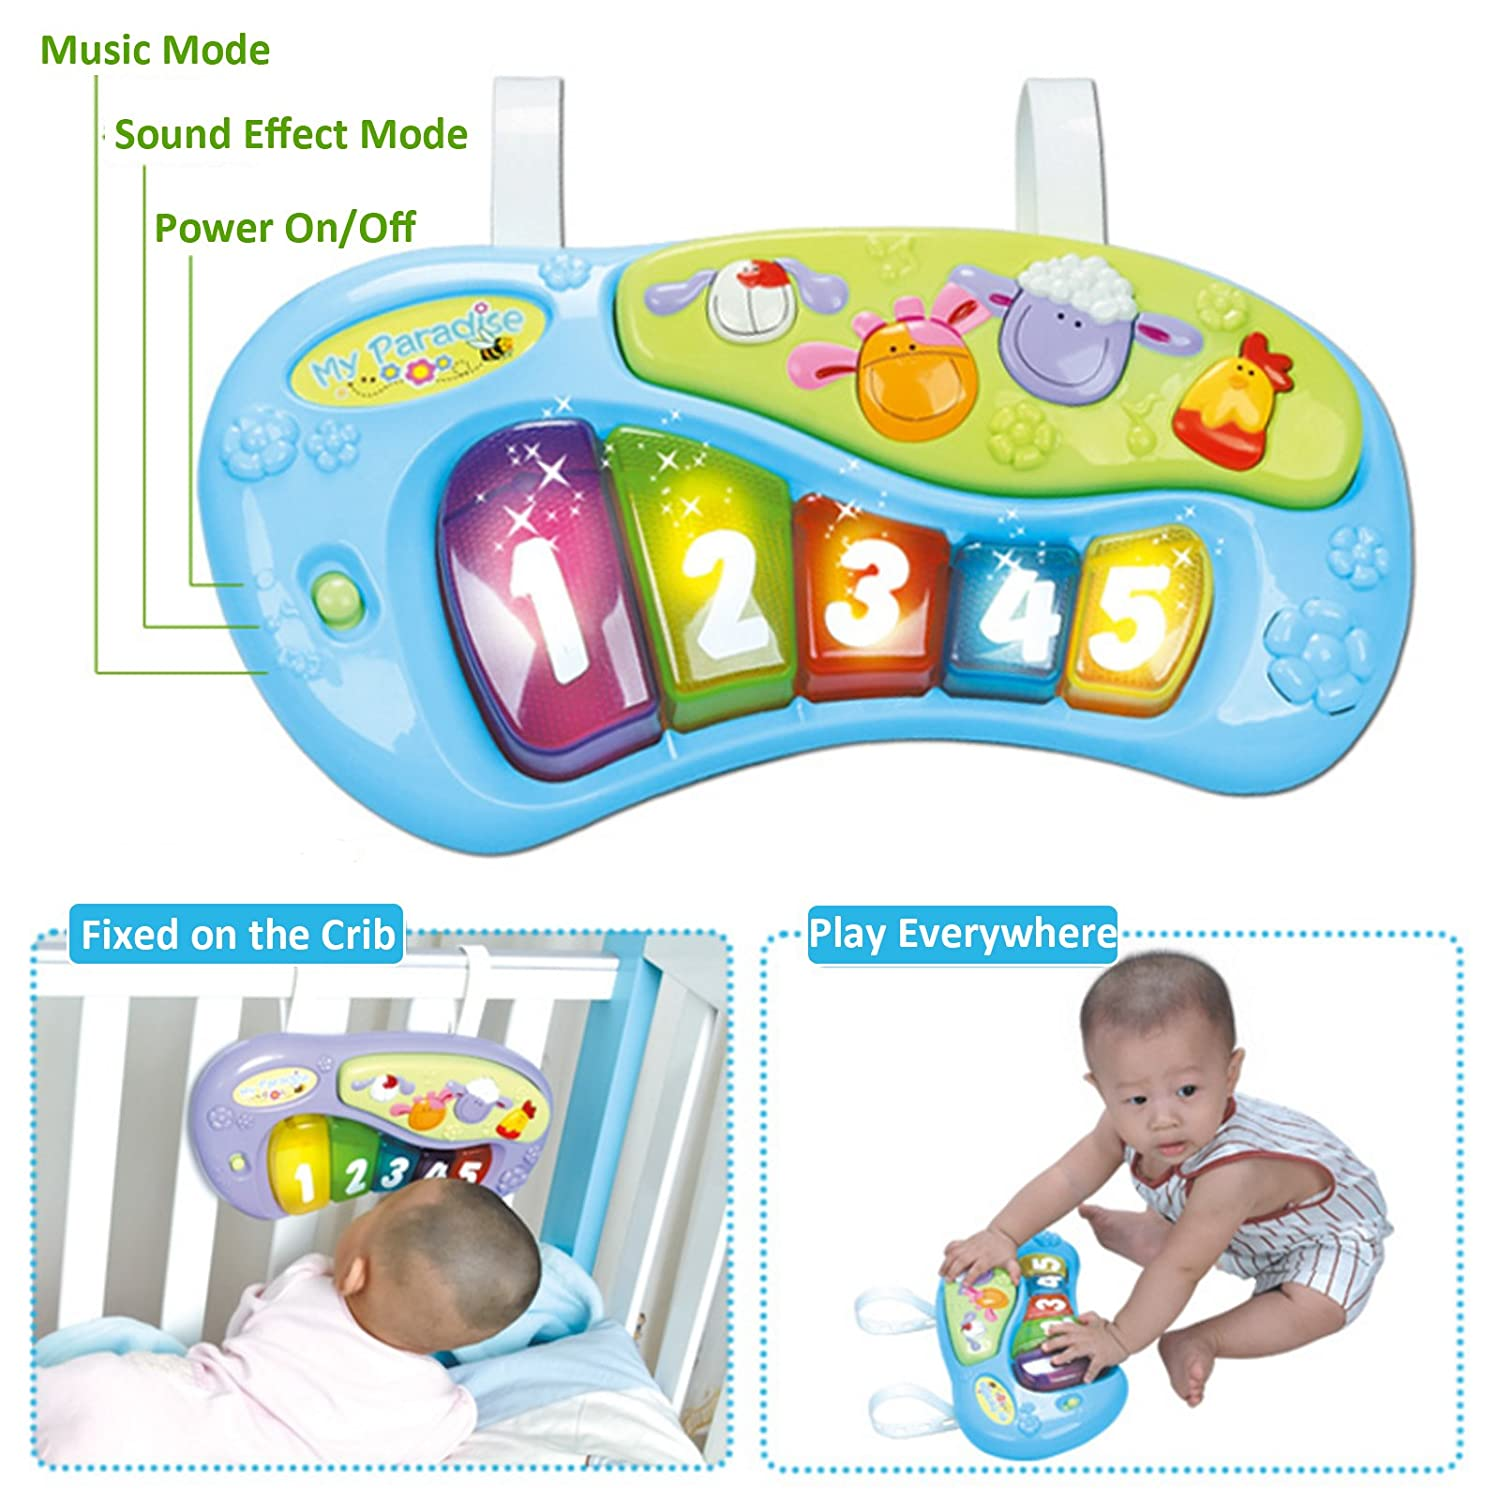 3c39e2395 Huile Baby Activity Learning Center Baby Stationary Jumper Bounce ...